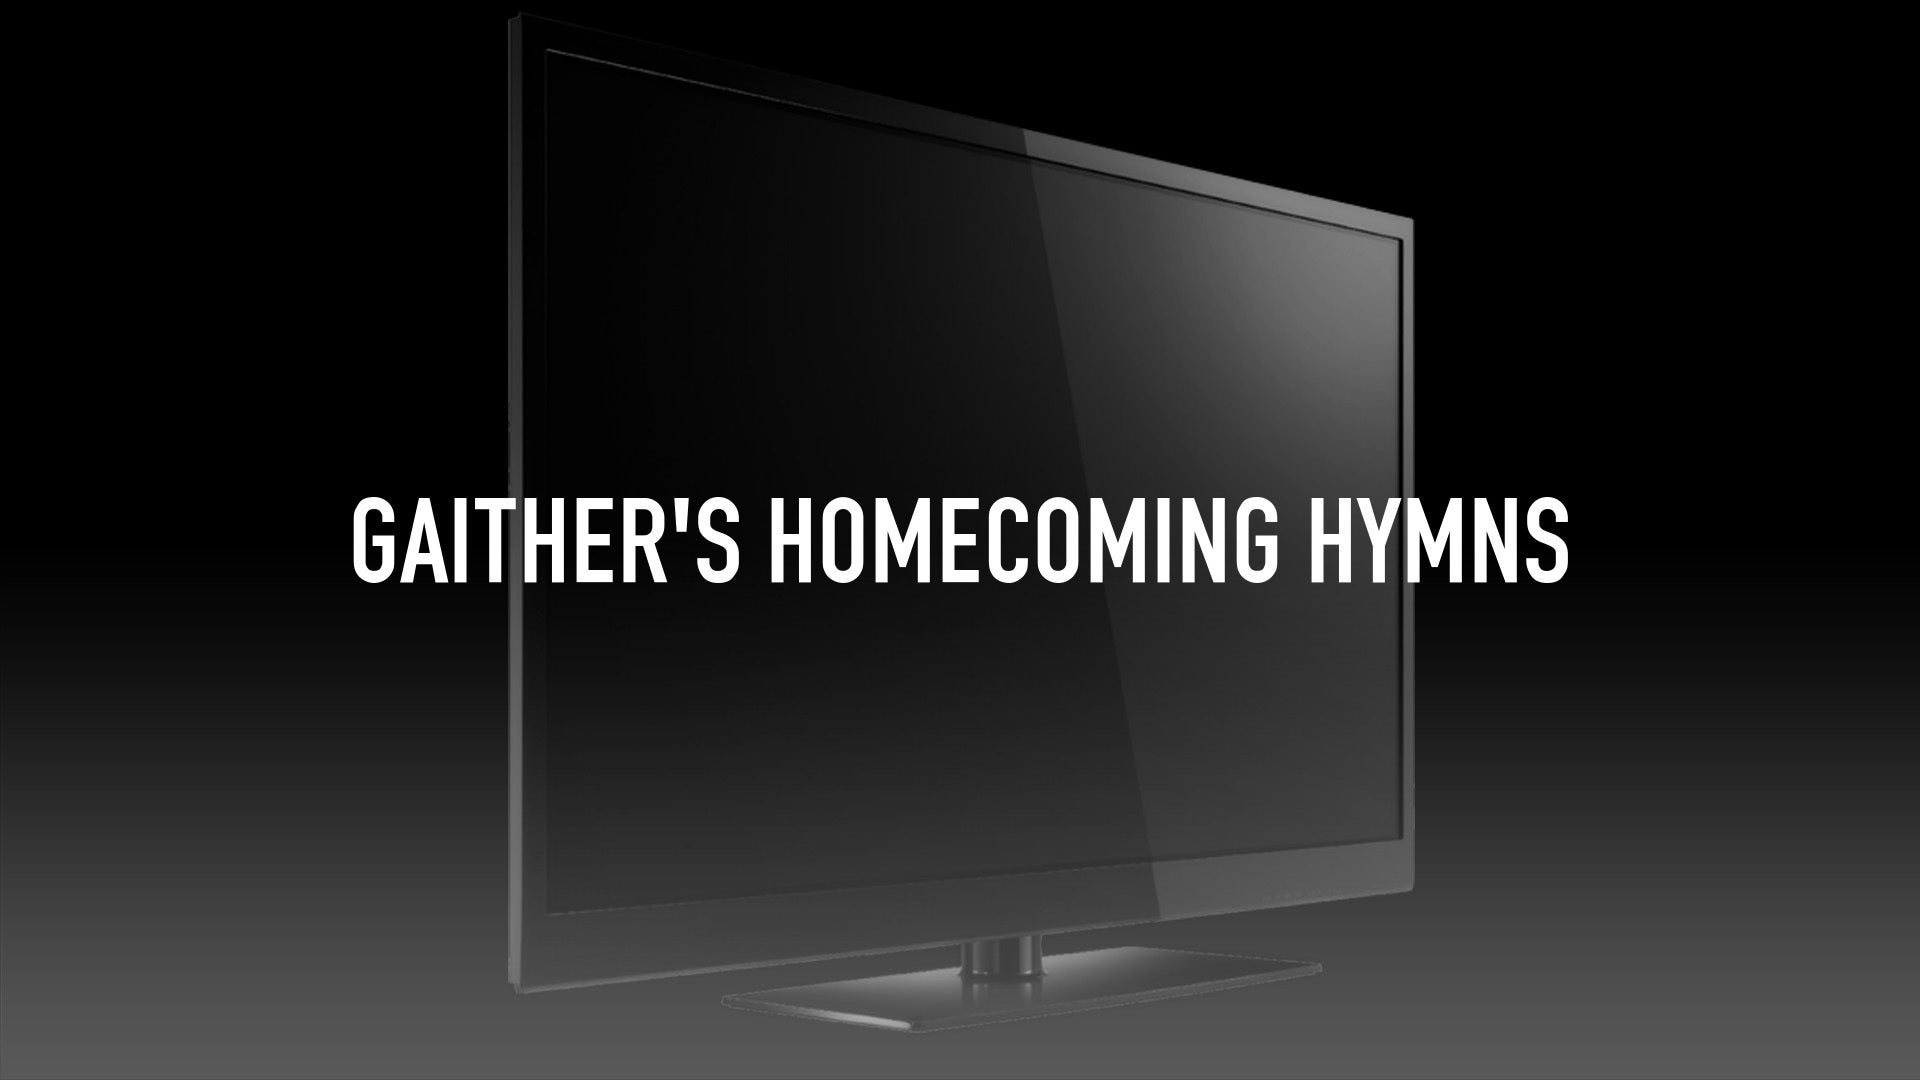 Gaither's Homecoming Hymns